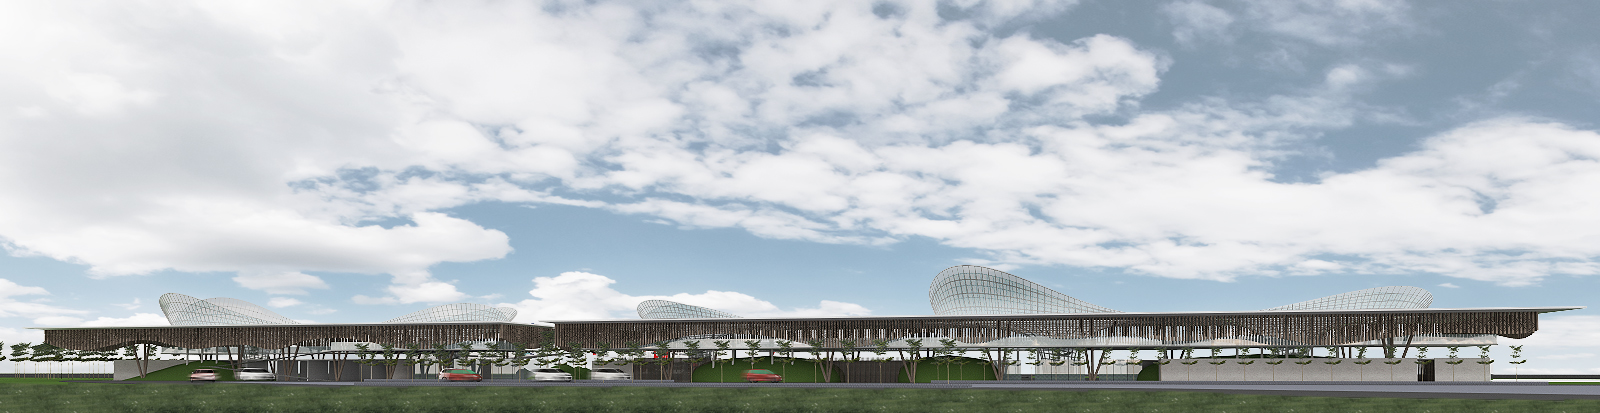 budipradono architects alor geataway airport competition